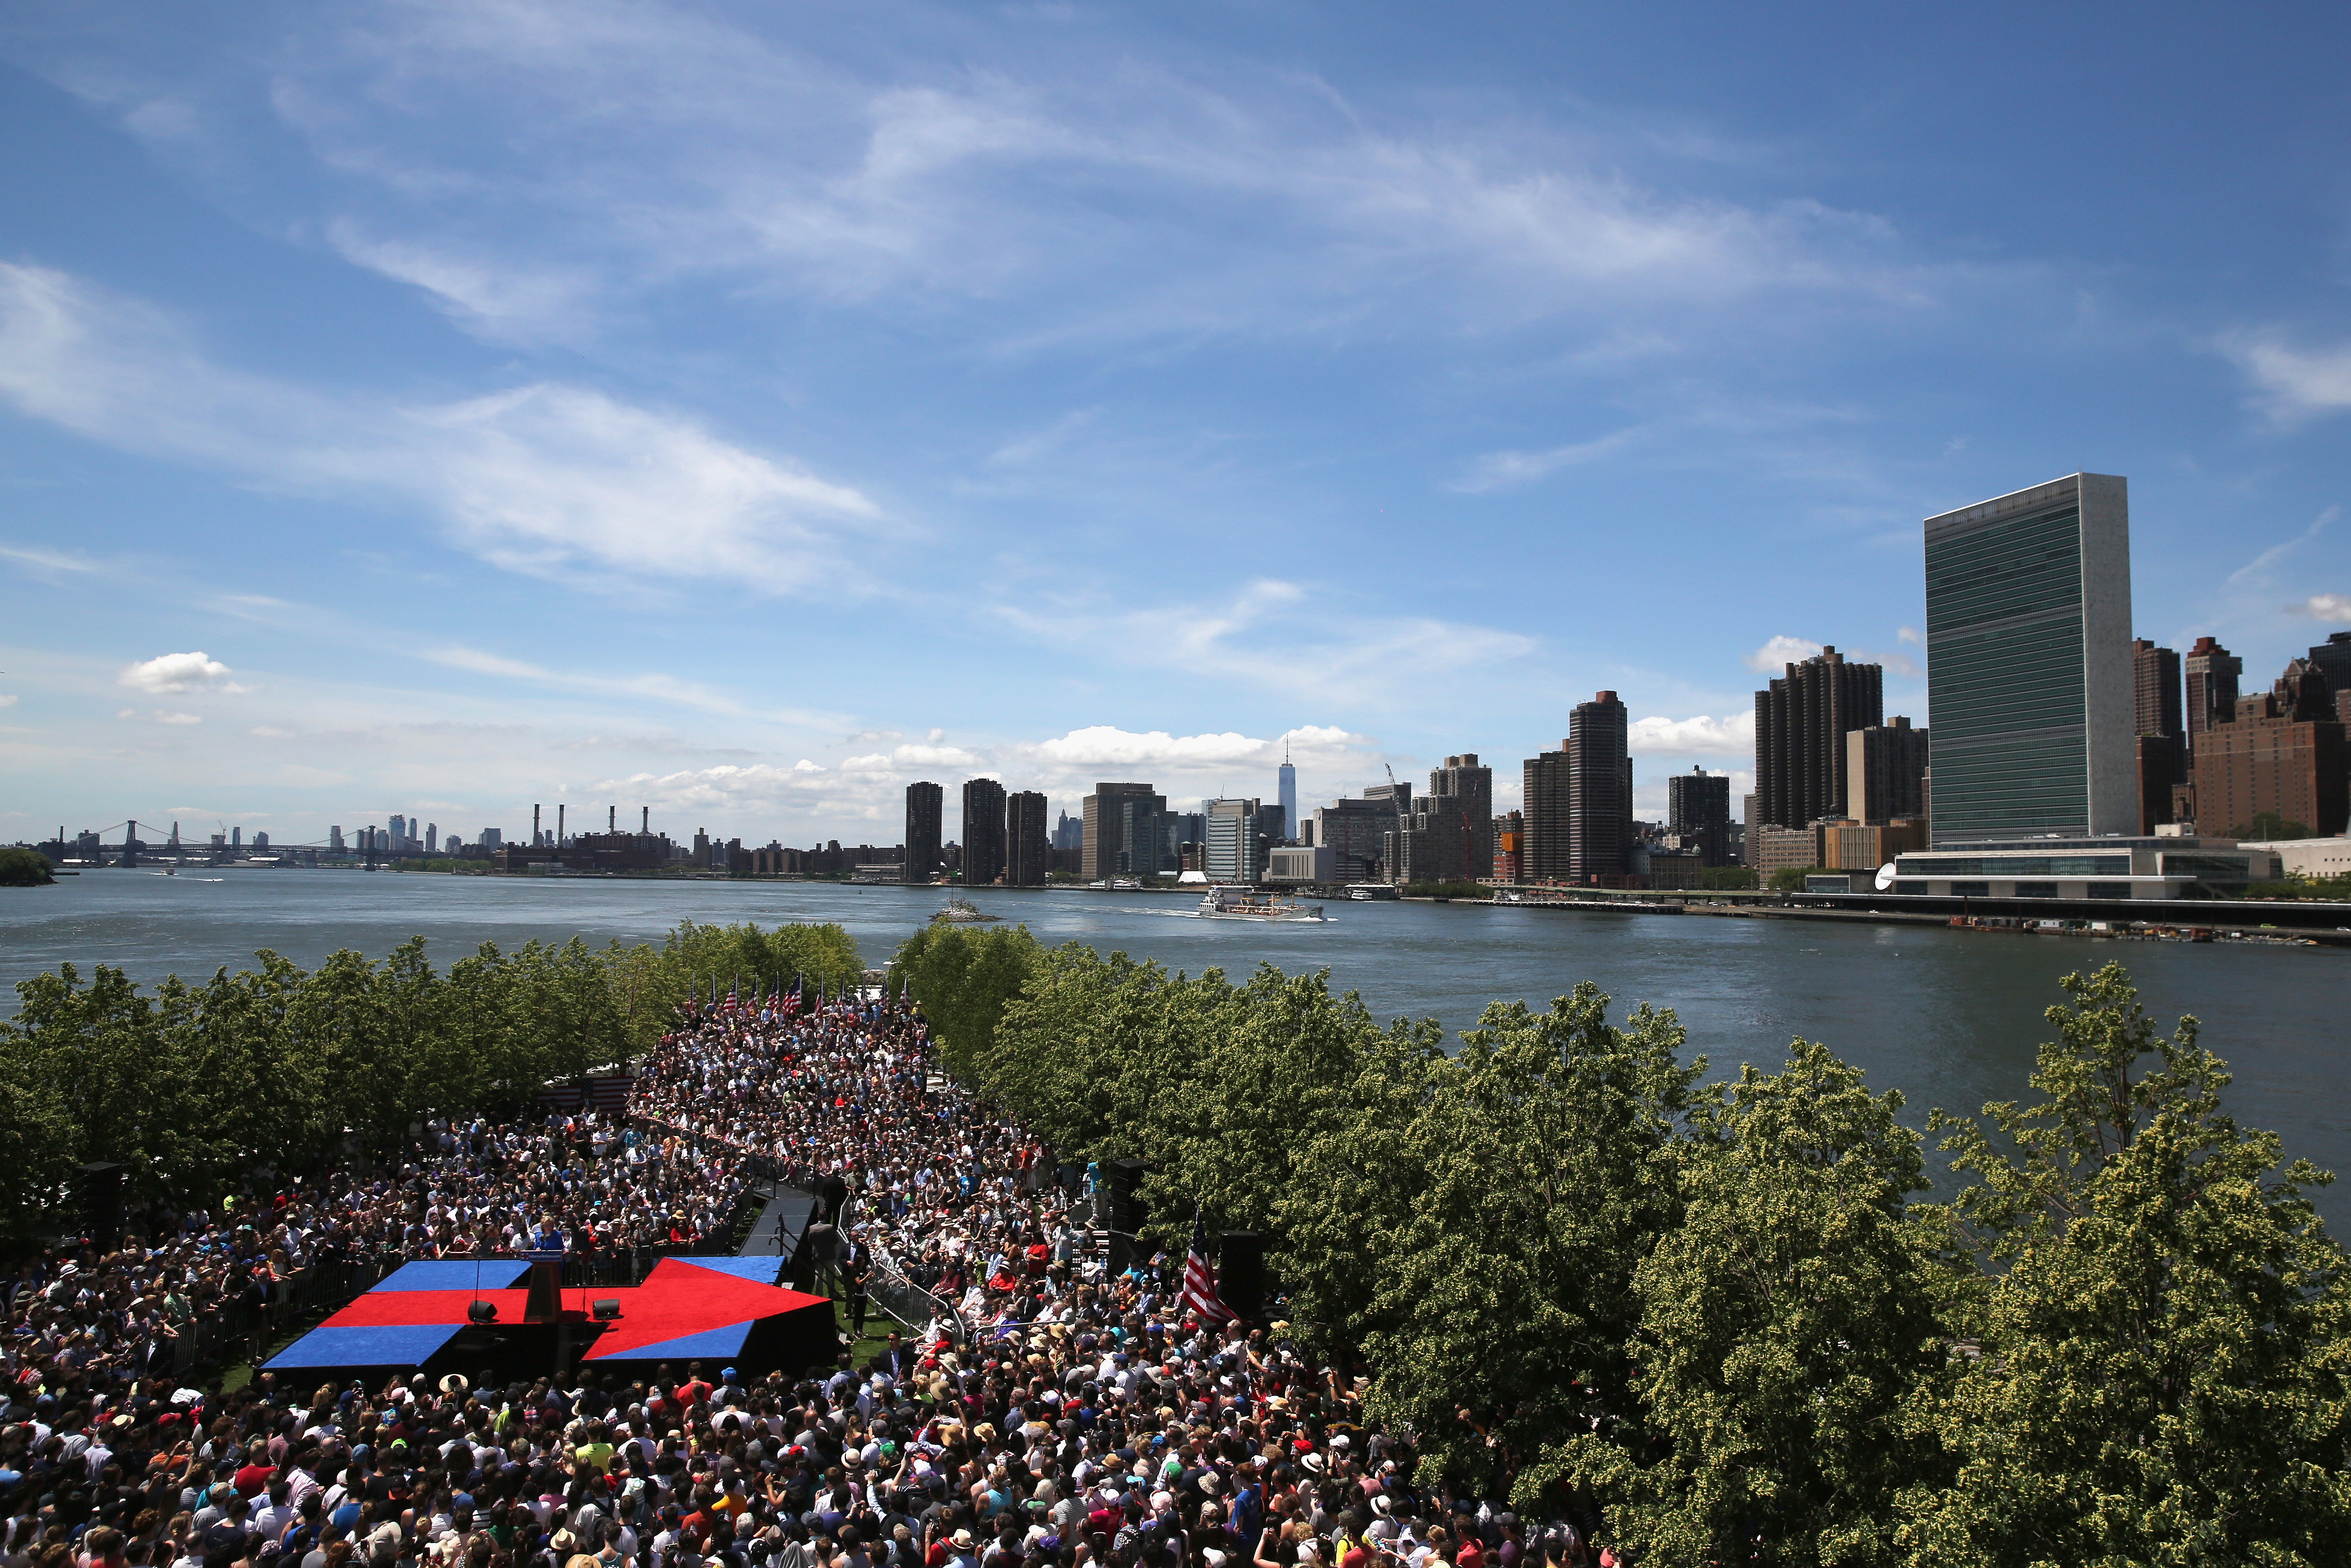 Democratic Presidential candidate Hillary Clinton speaks to supporters at her official campaign launch rally on June 13, 2015 at Roosevelt Island in New York City.  At right is Manhattan and the United Nations headquarters. (Photo by John Moore/Getty Images)